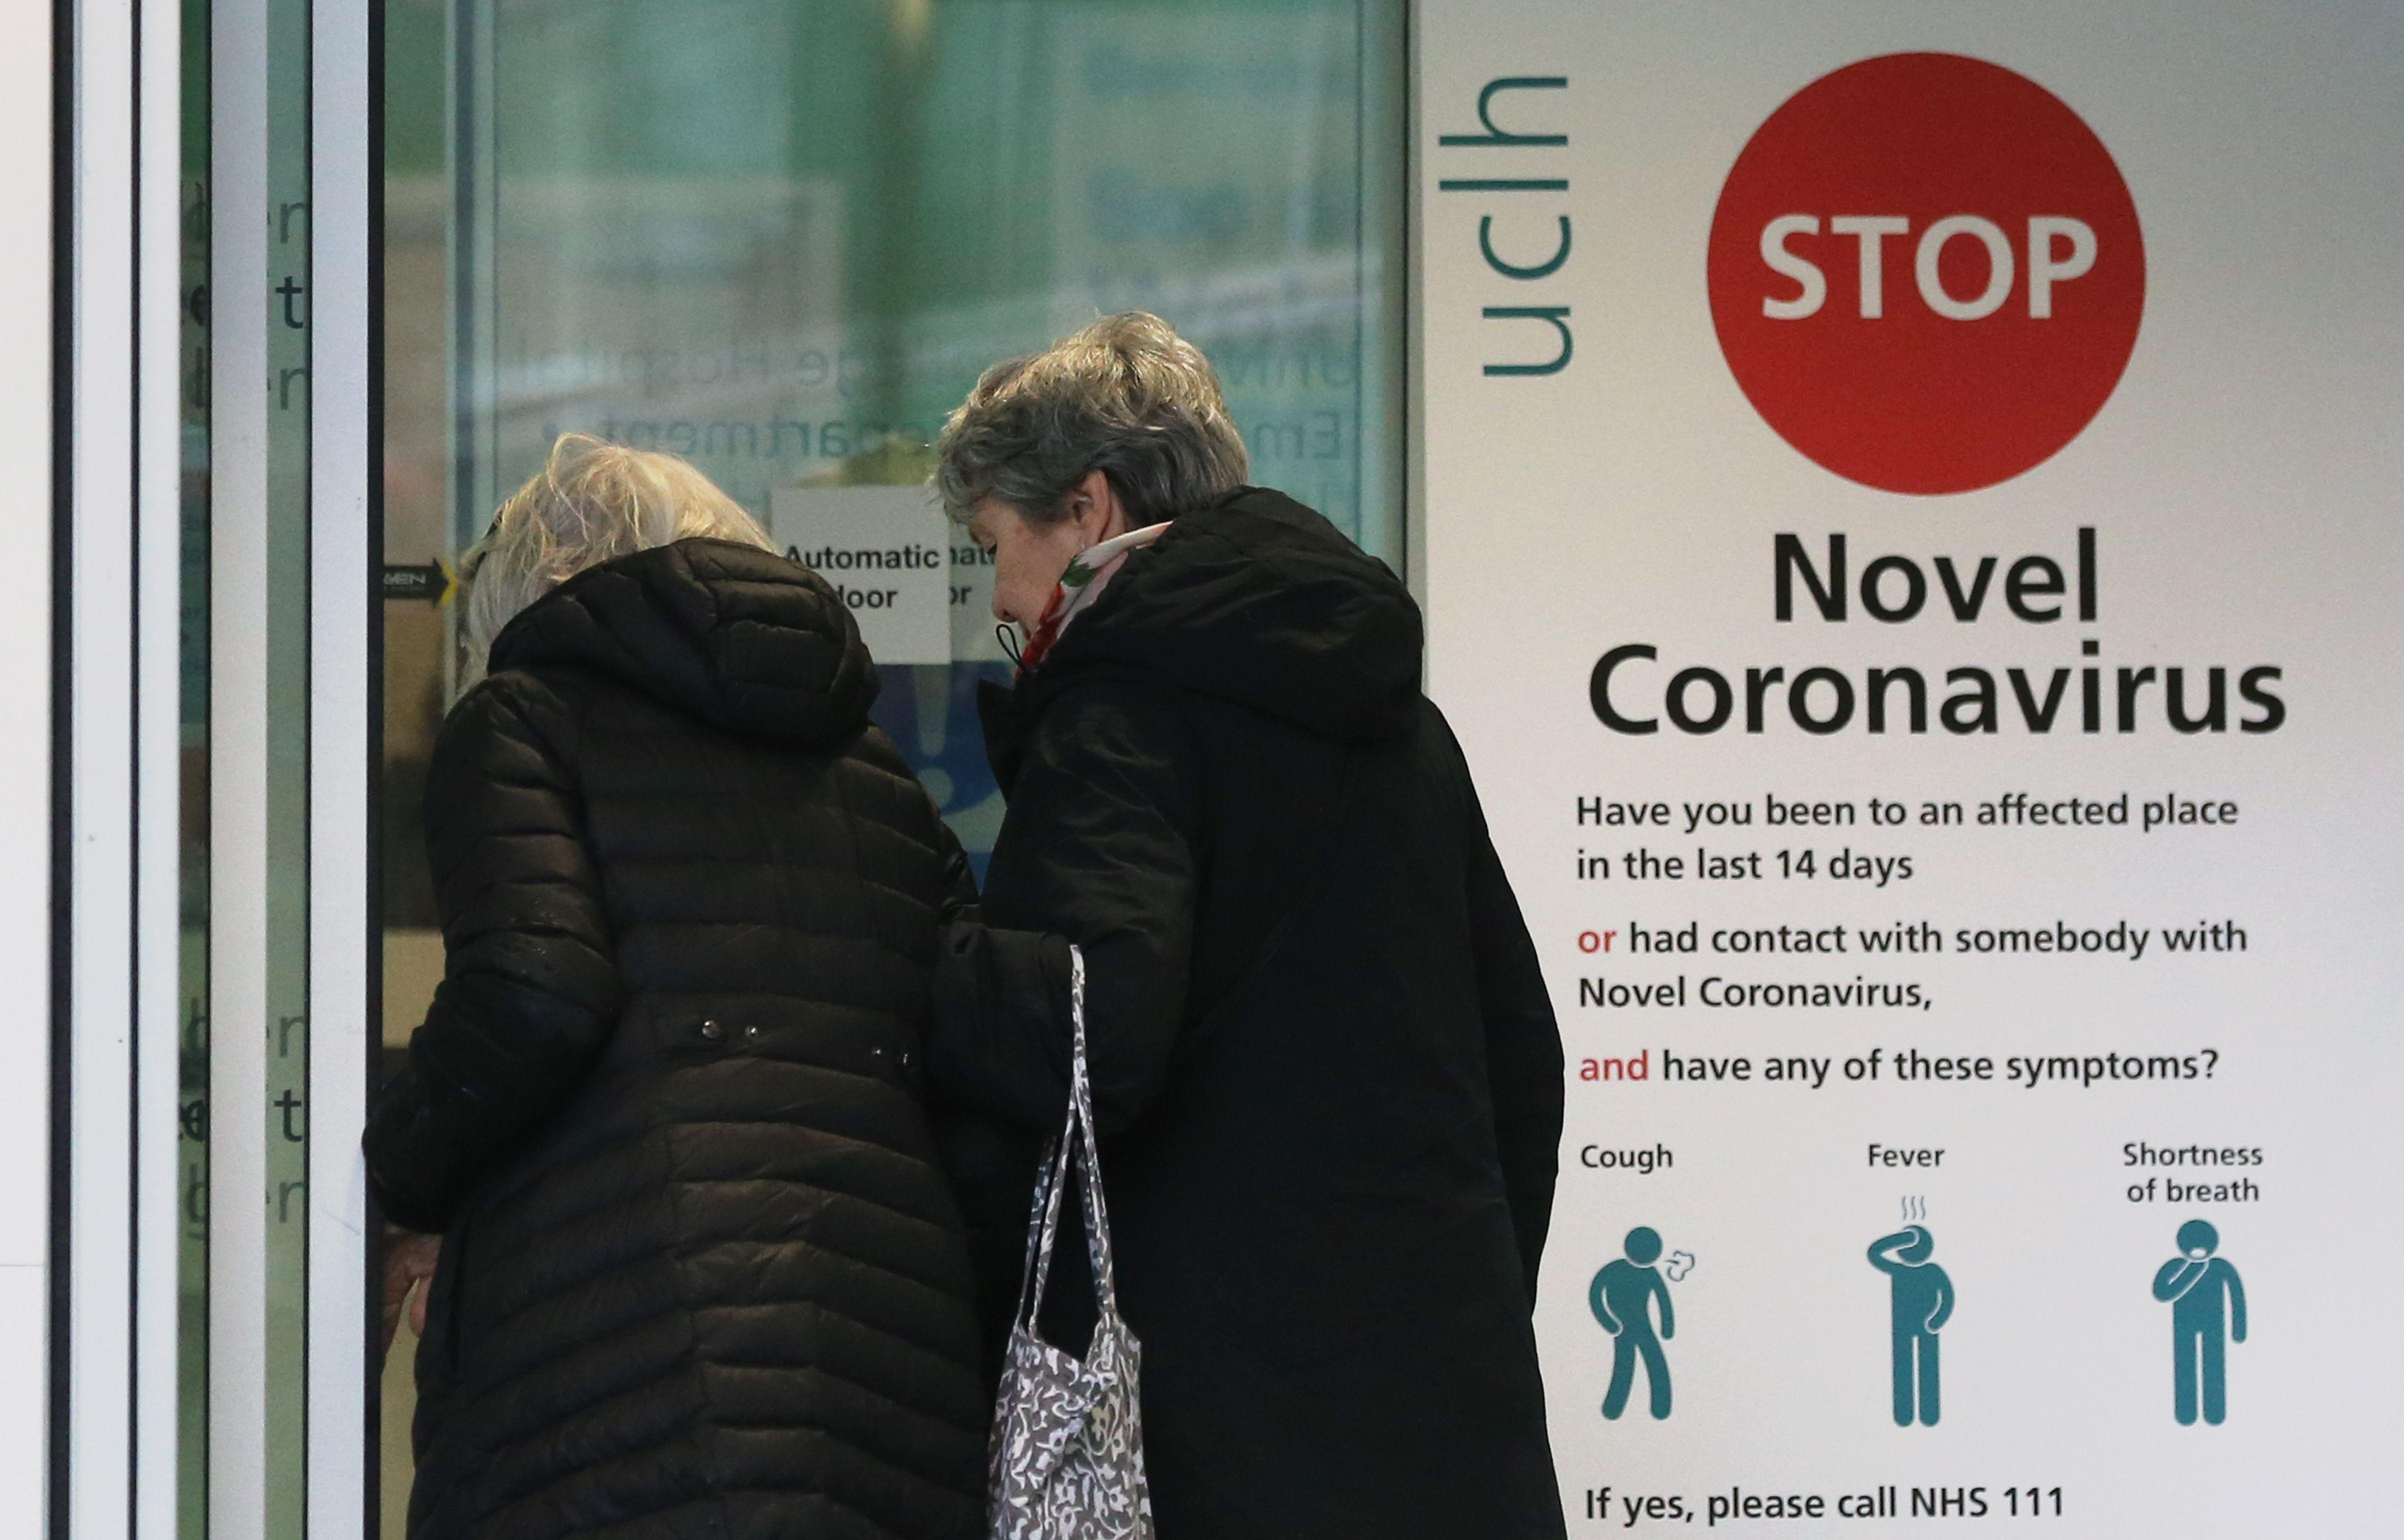 Two women walk past a sign providing guidance information about novel coronavirus (COVID-19) at one of the entrances to University College Hospital in London on March 5, 2020. - The number of confirmed cases of novel coronavirus COVID-19 in the UK rose to 85 on March 4, with fears over the outbreak delaying the global release of the new James Bond movie and causing lack of demand for air travel that has proved the final nail in the coffin for British regional airline Flybe which went into administration on March 5. (Photo by Isabel Infantes / AFP) (Photo by ISABEL INFANTES/AFP via Getty Images)